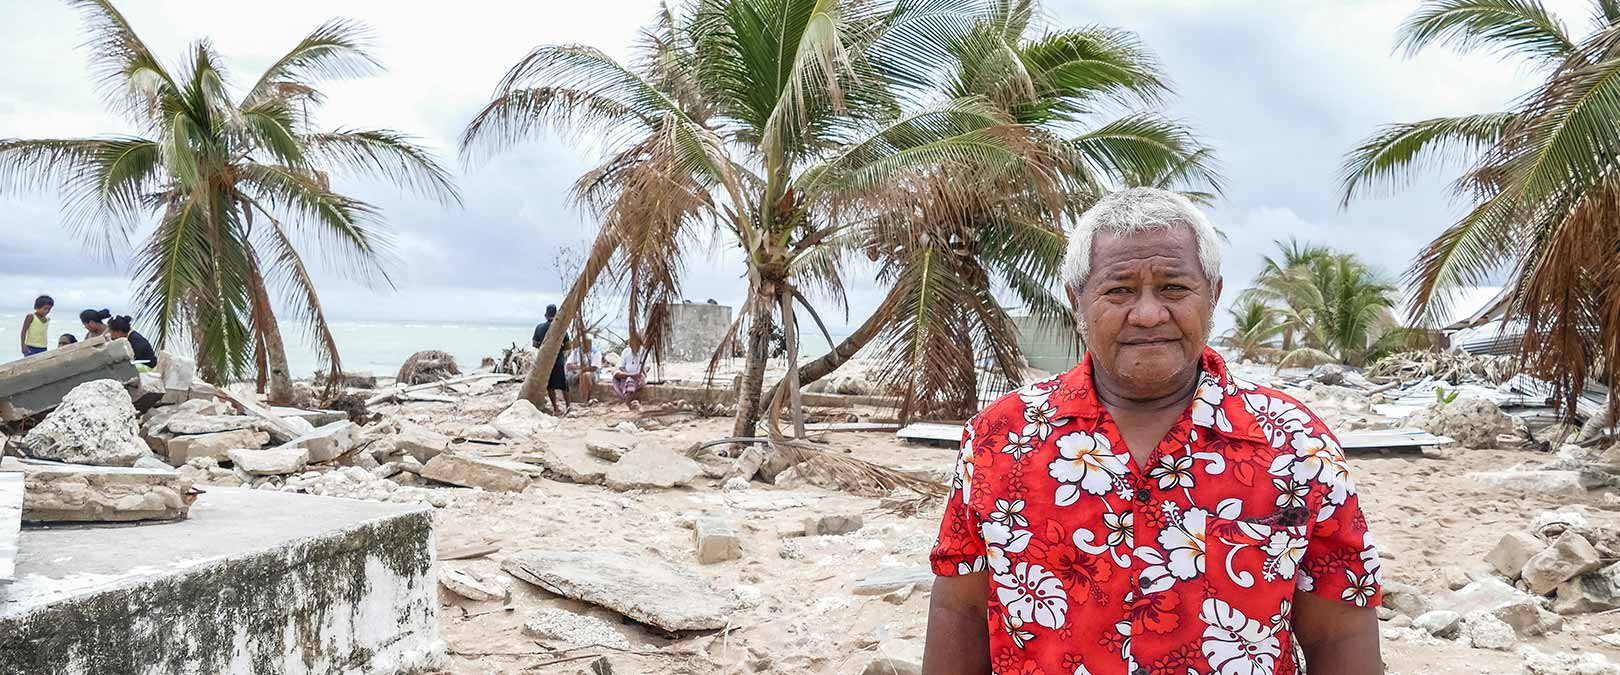 Fayvaka Keneseli Chief of Nui explains the impact of Cyclone Pam waves on his island and the greatest needs of support. Photo: Silke von Brockhausen/UNDP